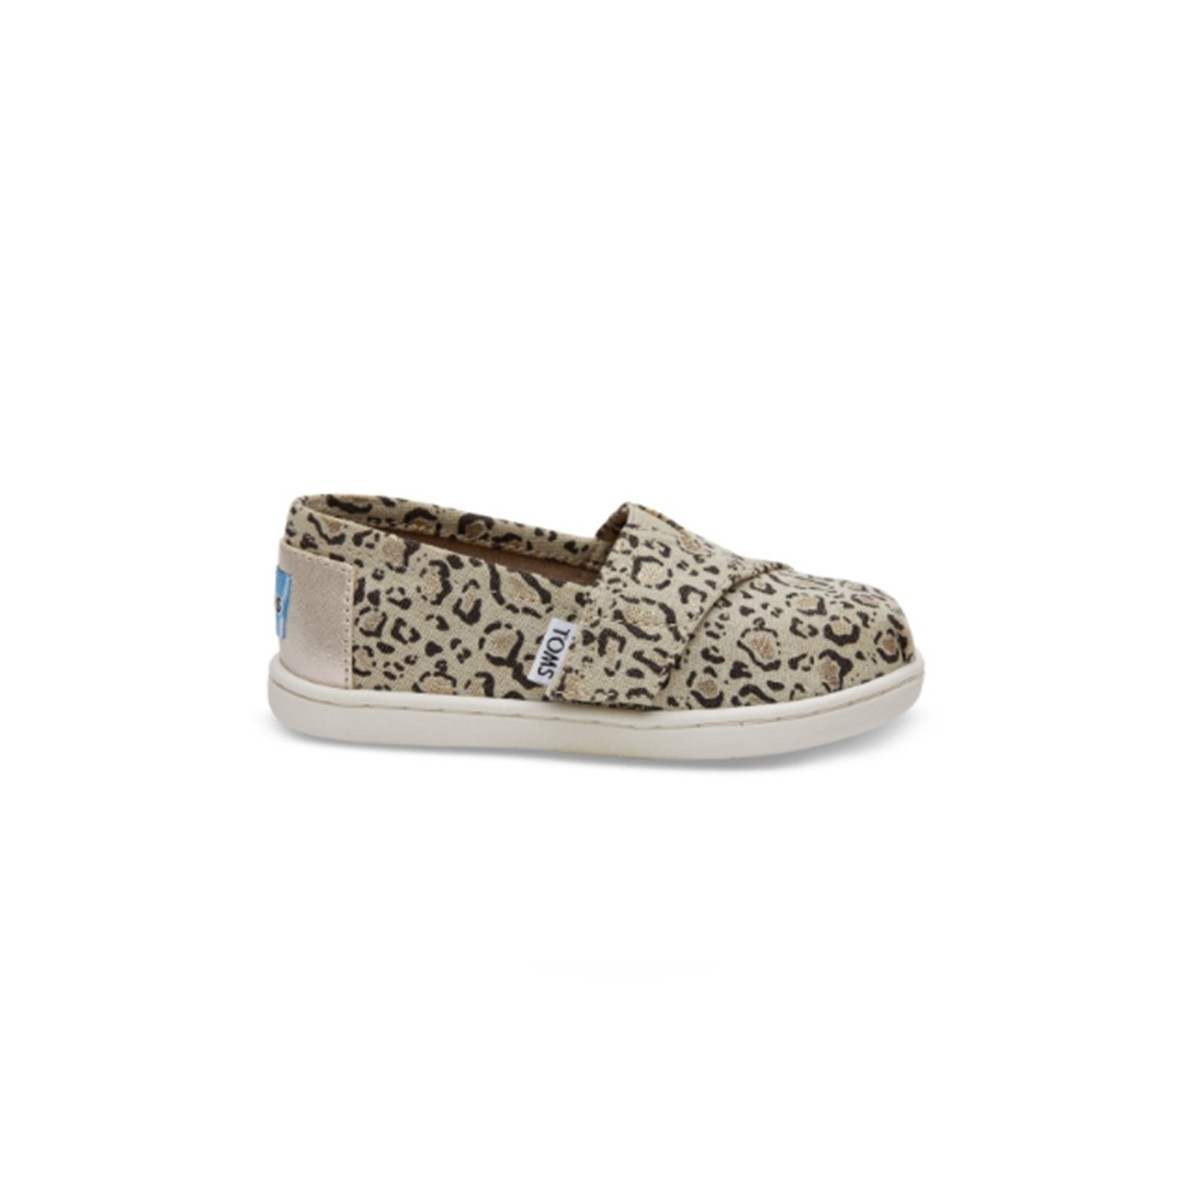 Chaussure toile imprimé chat beige/or velcro kids